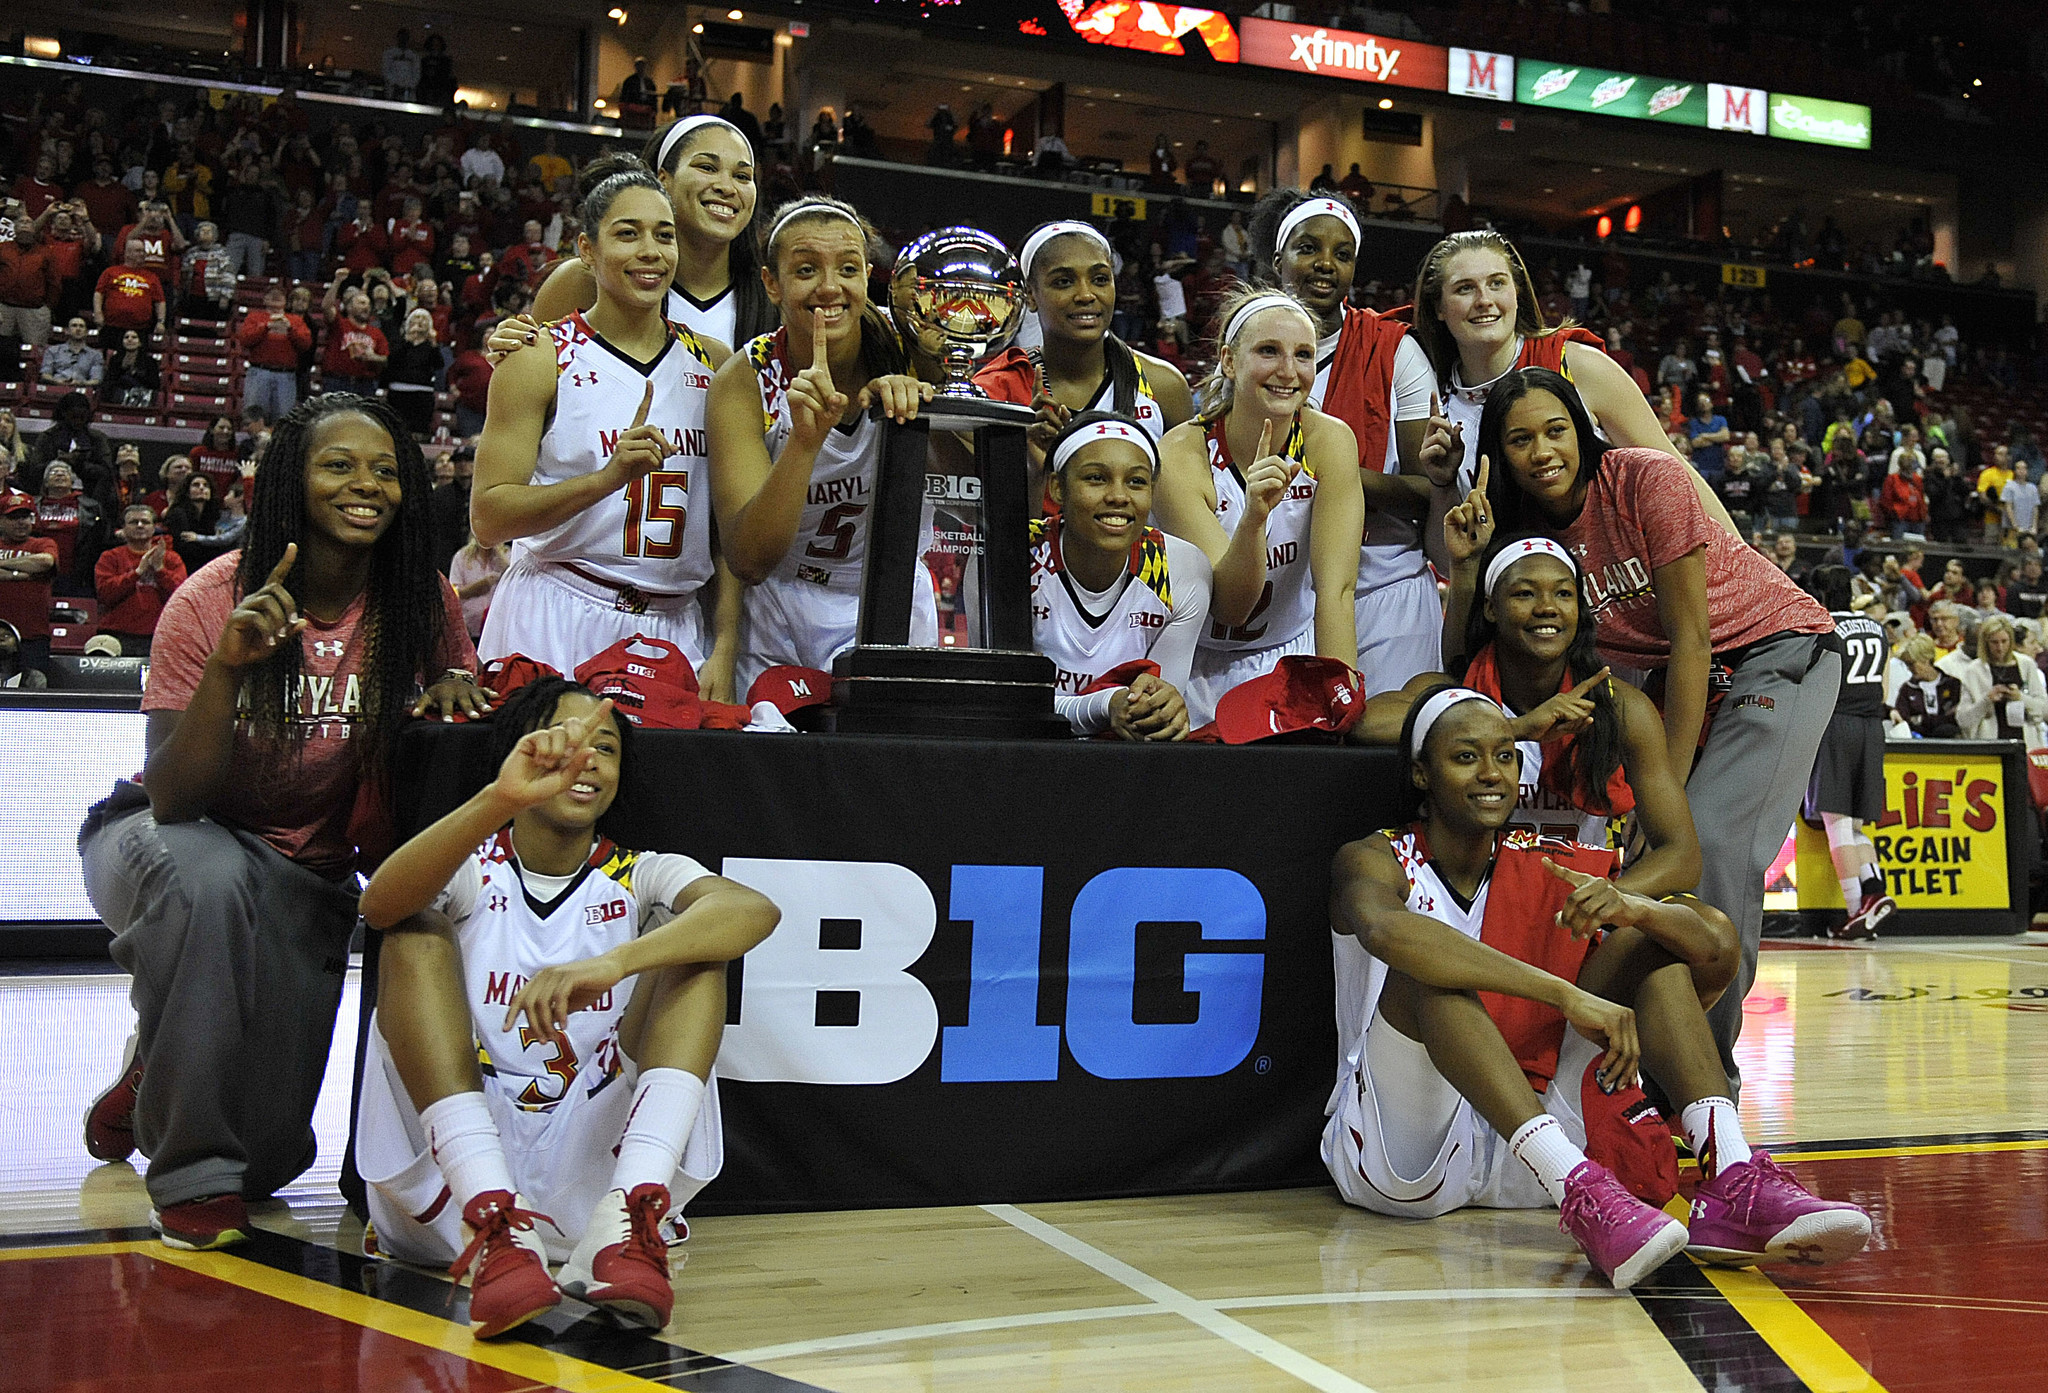 Bal-maryland-women-picked-to-finish-first-in-big-ten-two-terps-named-all-conference-20161024